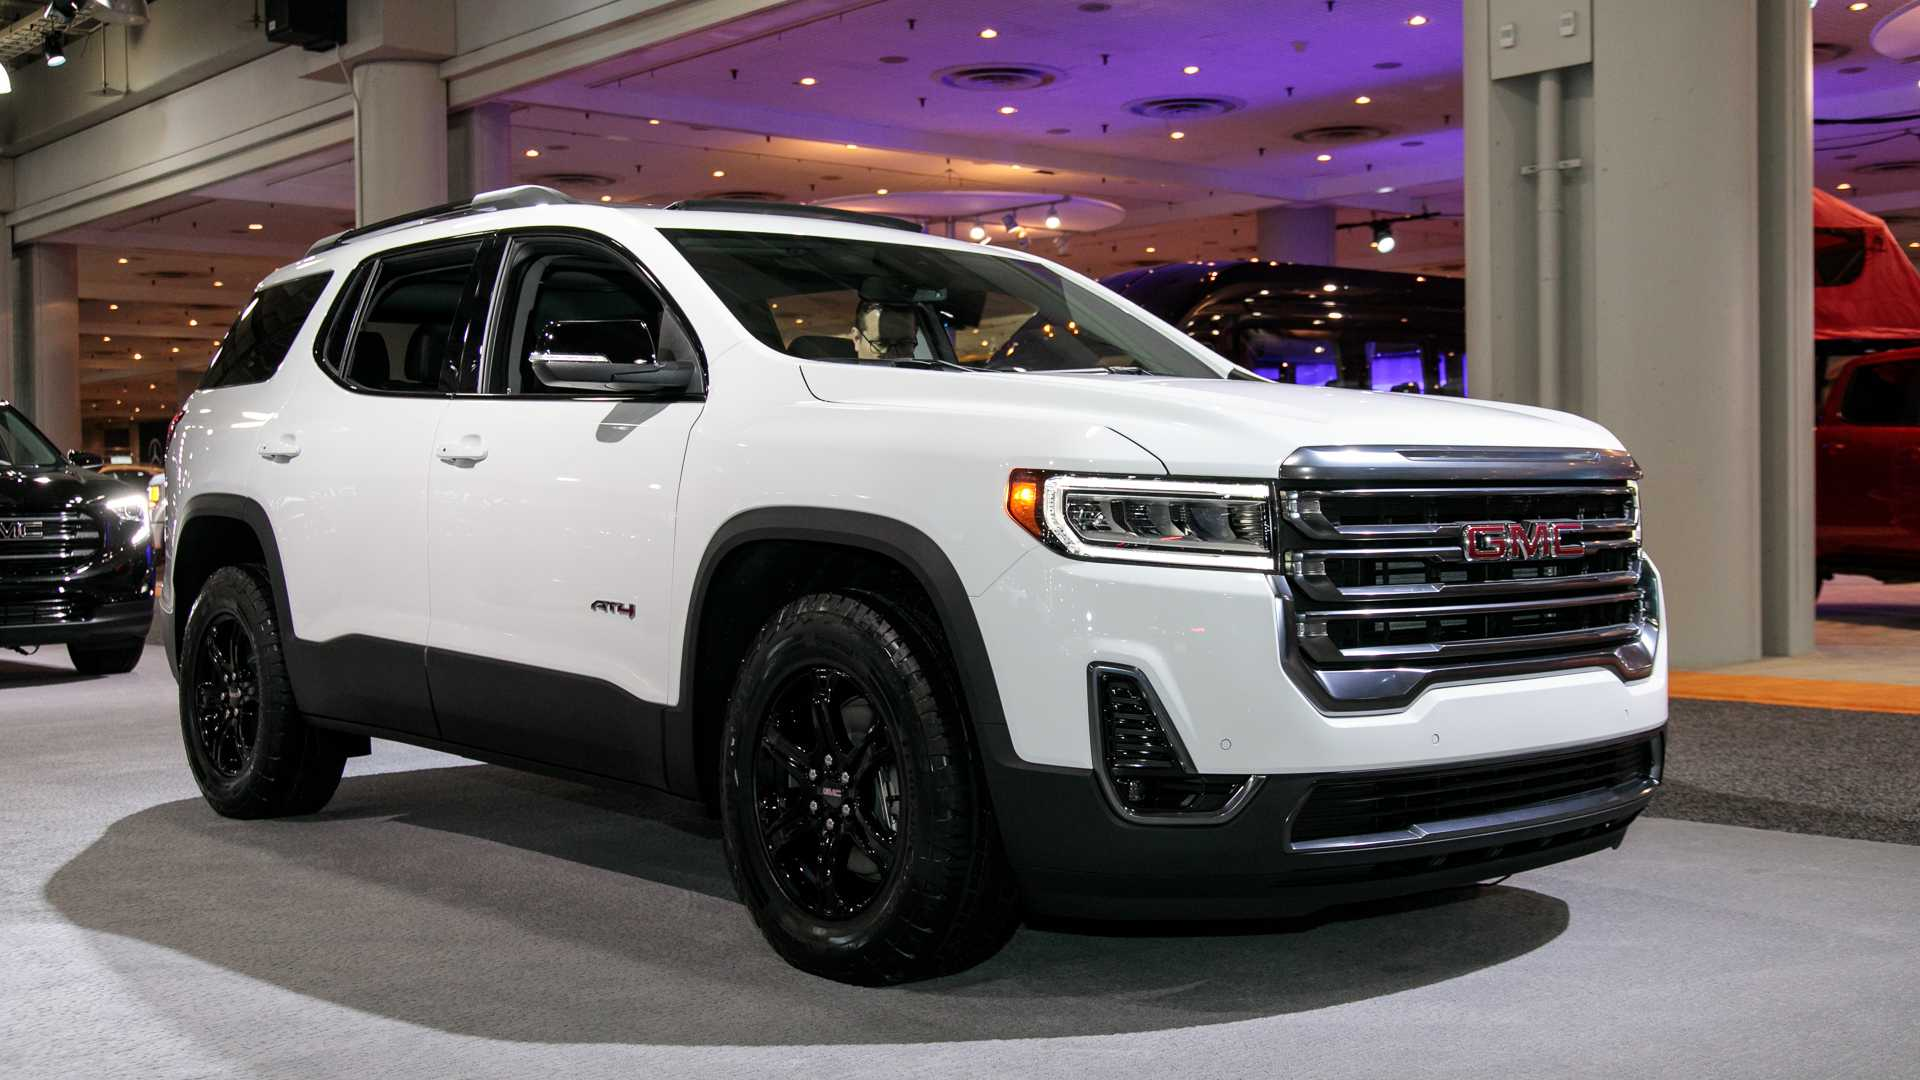 95 Concept of 2020 Gmc Acadia Mpg Performance for 2020 Gmc Acadia Mpg